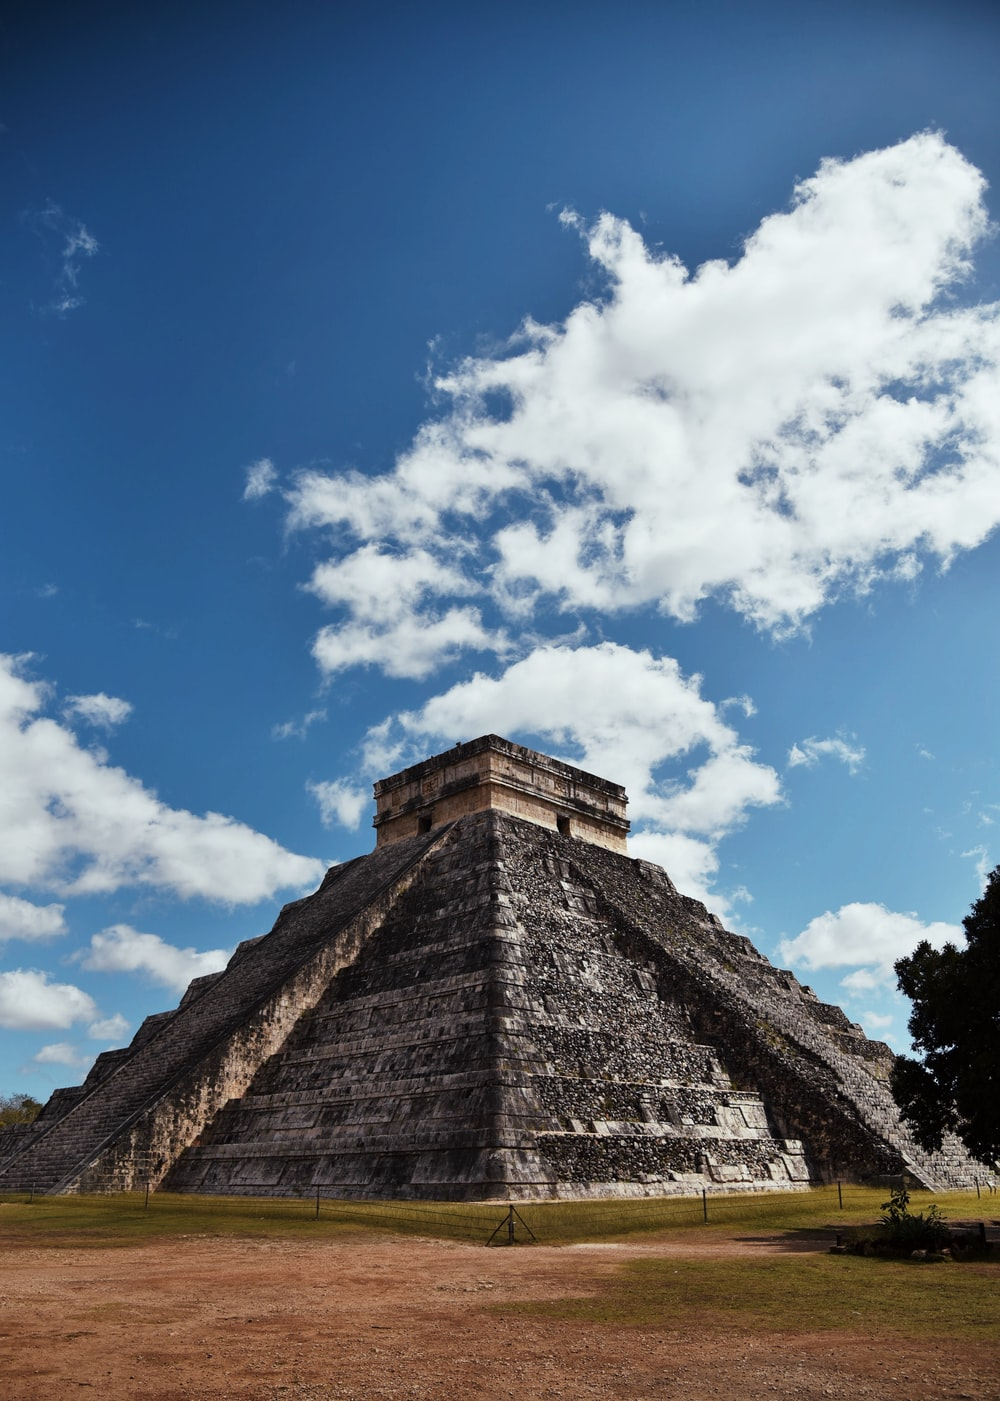 grey pyramid under blue and white sky during daytime